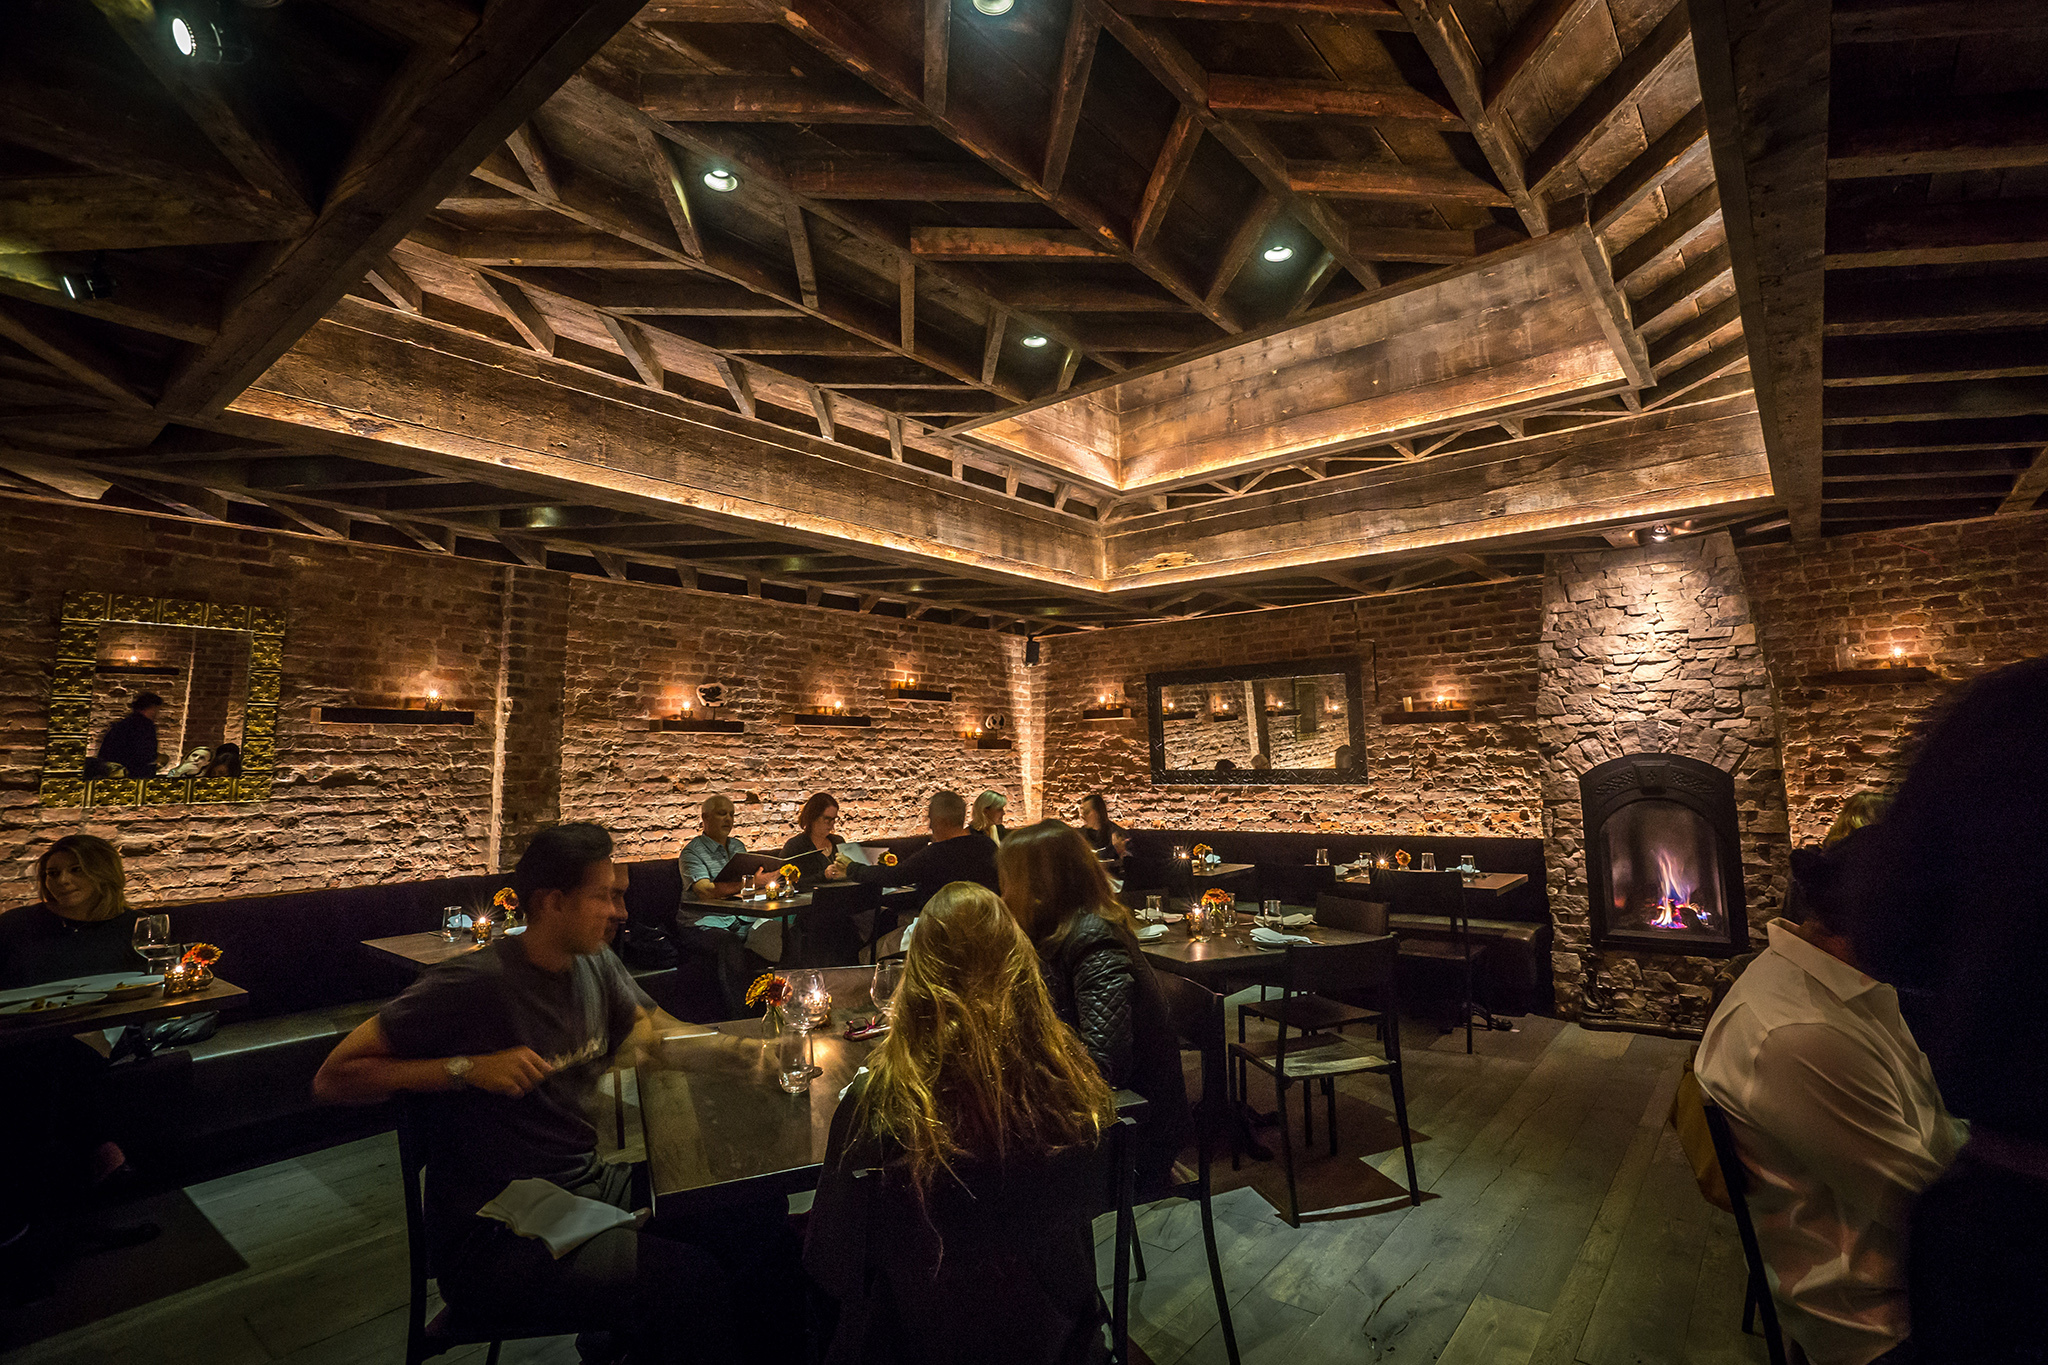 Most romantic restaurants in nyc for date night for Places to see in nyc at night